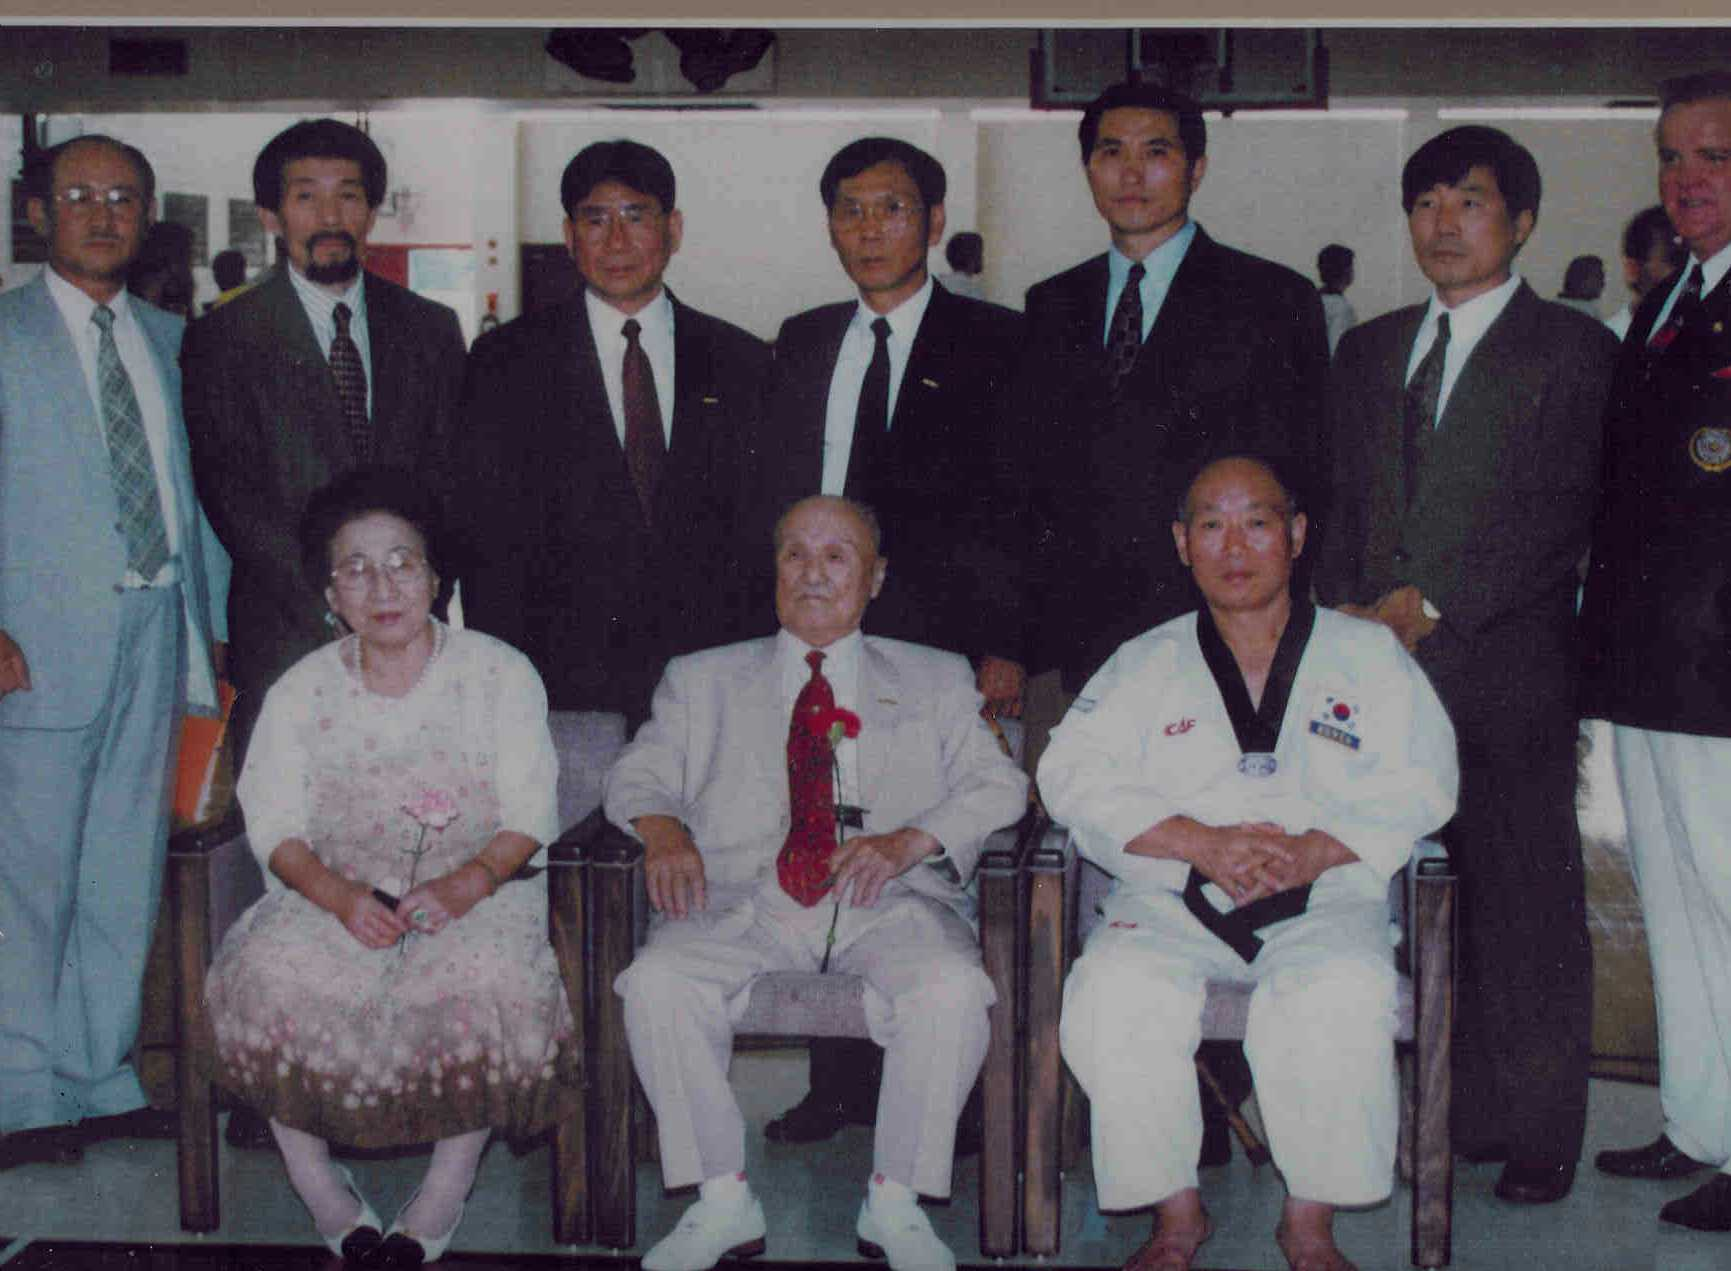 June 22, 2001 Chung Do Kwan Founder and Grandmasters